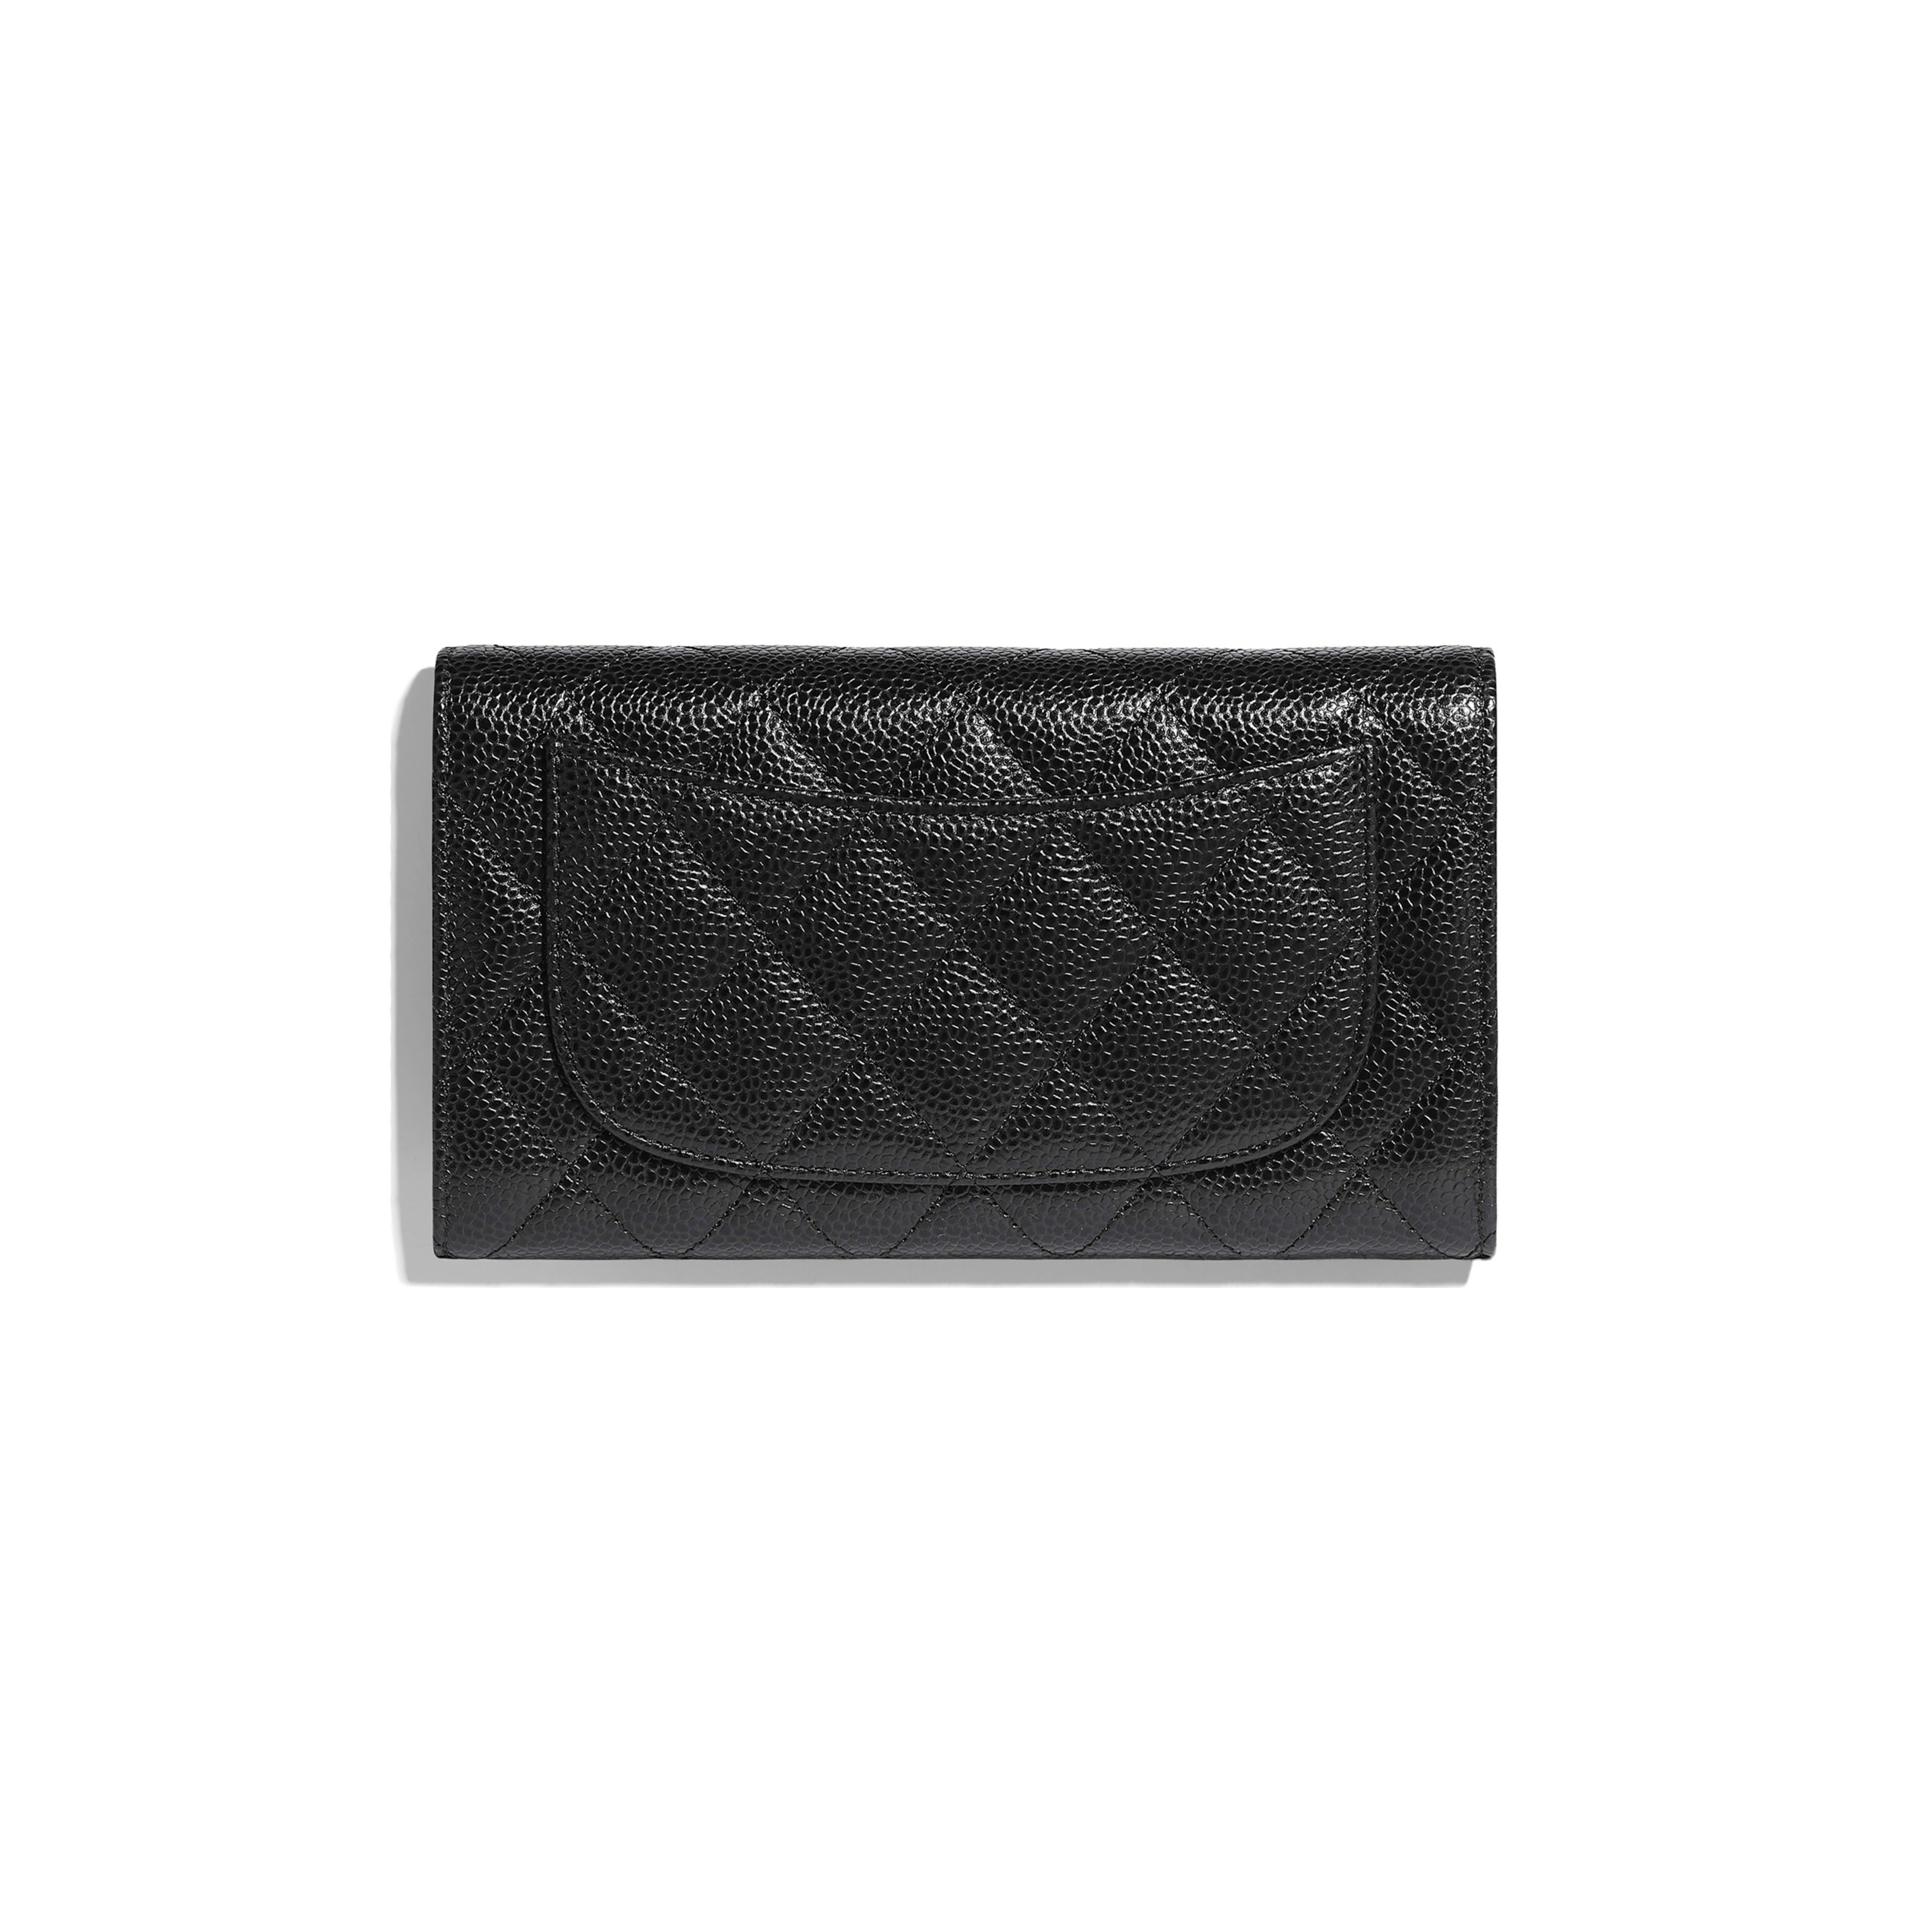 Classic Flap Wallet - Black - Grained Calfskin & Gold-Tone Metal - Alternative view - see full sized version